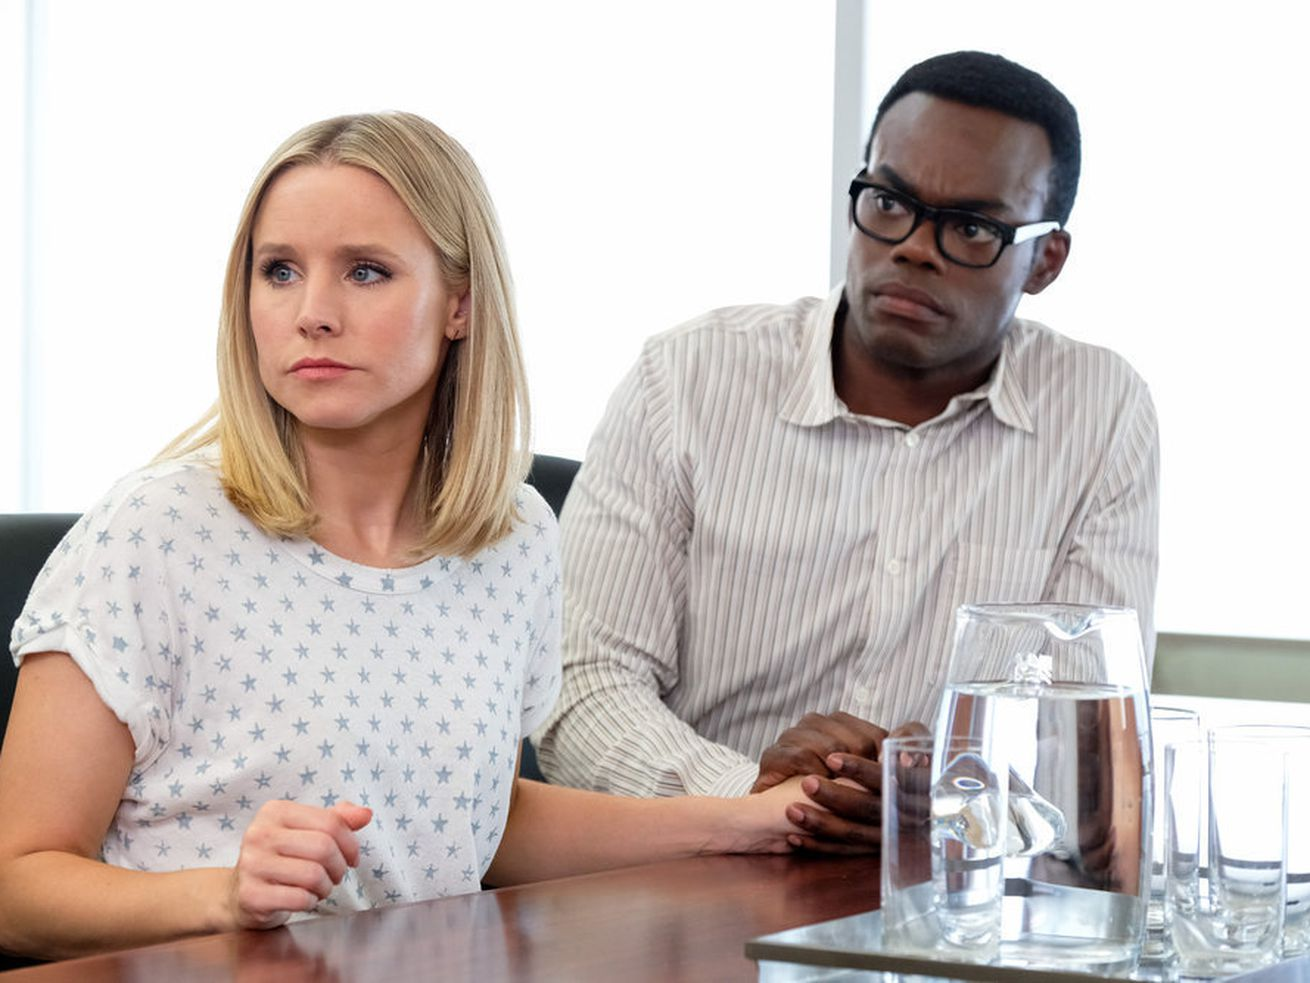 Did Chidi just see the time-knife? It's hard to say.